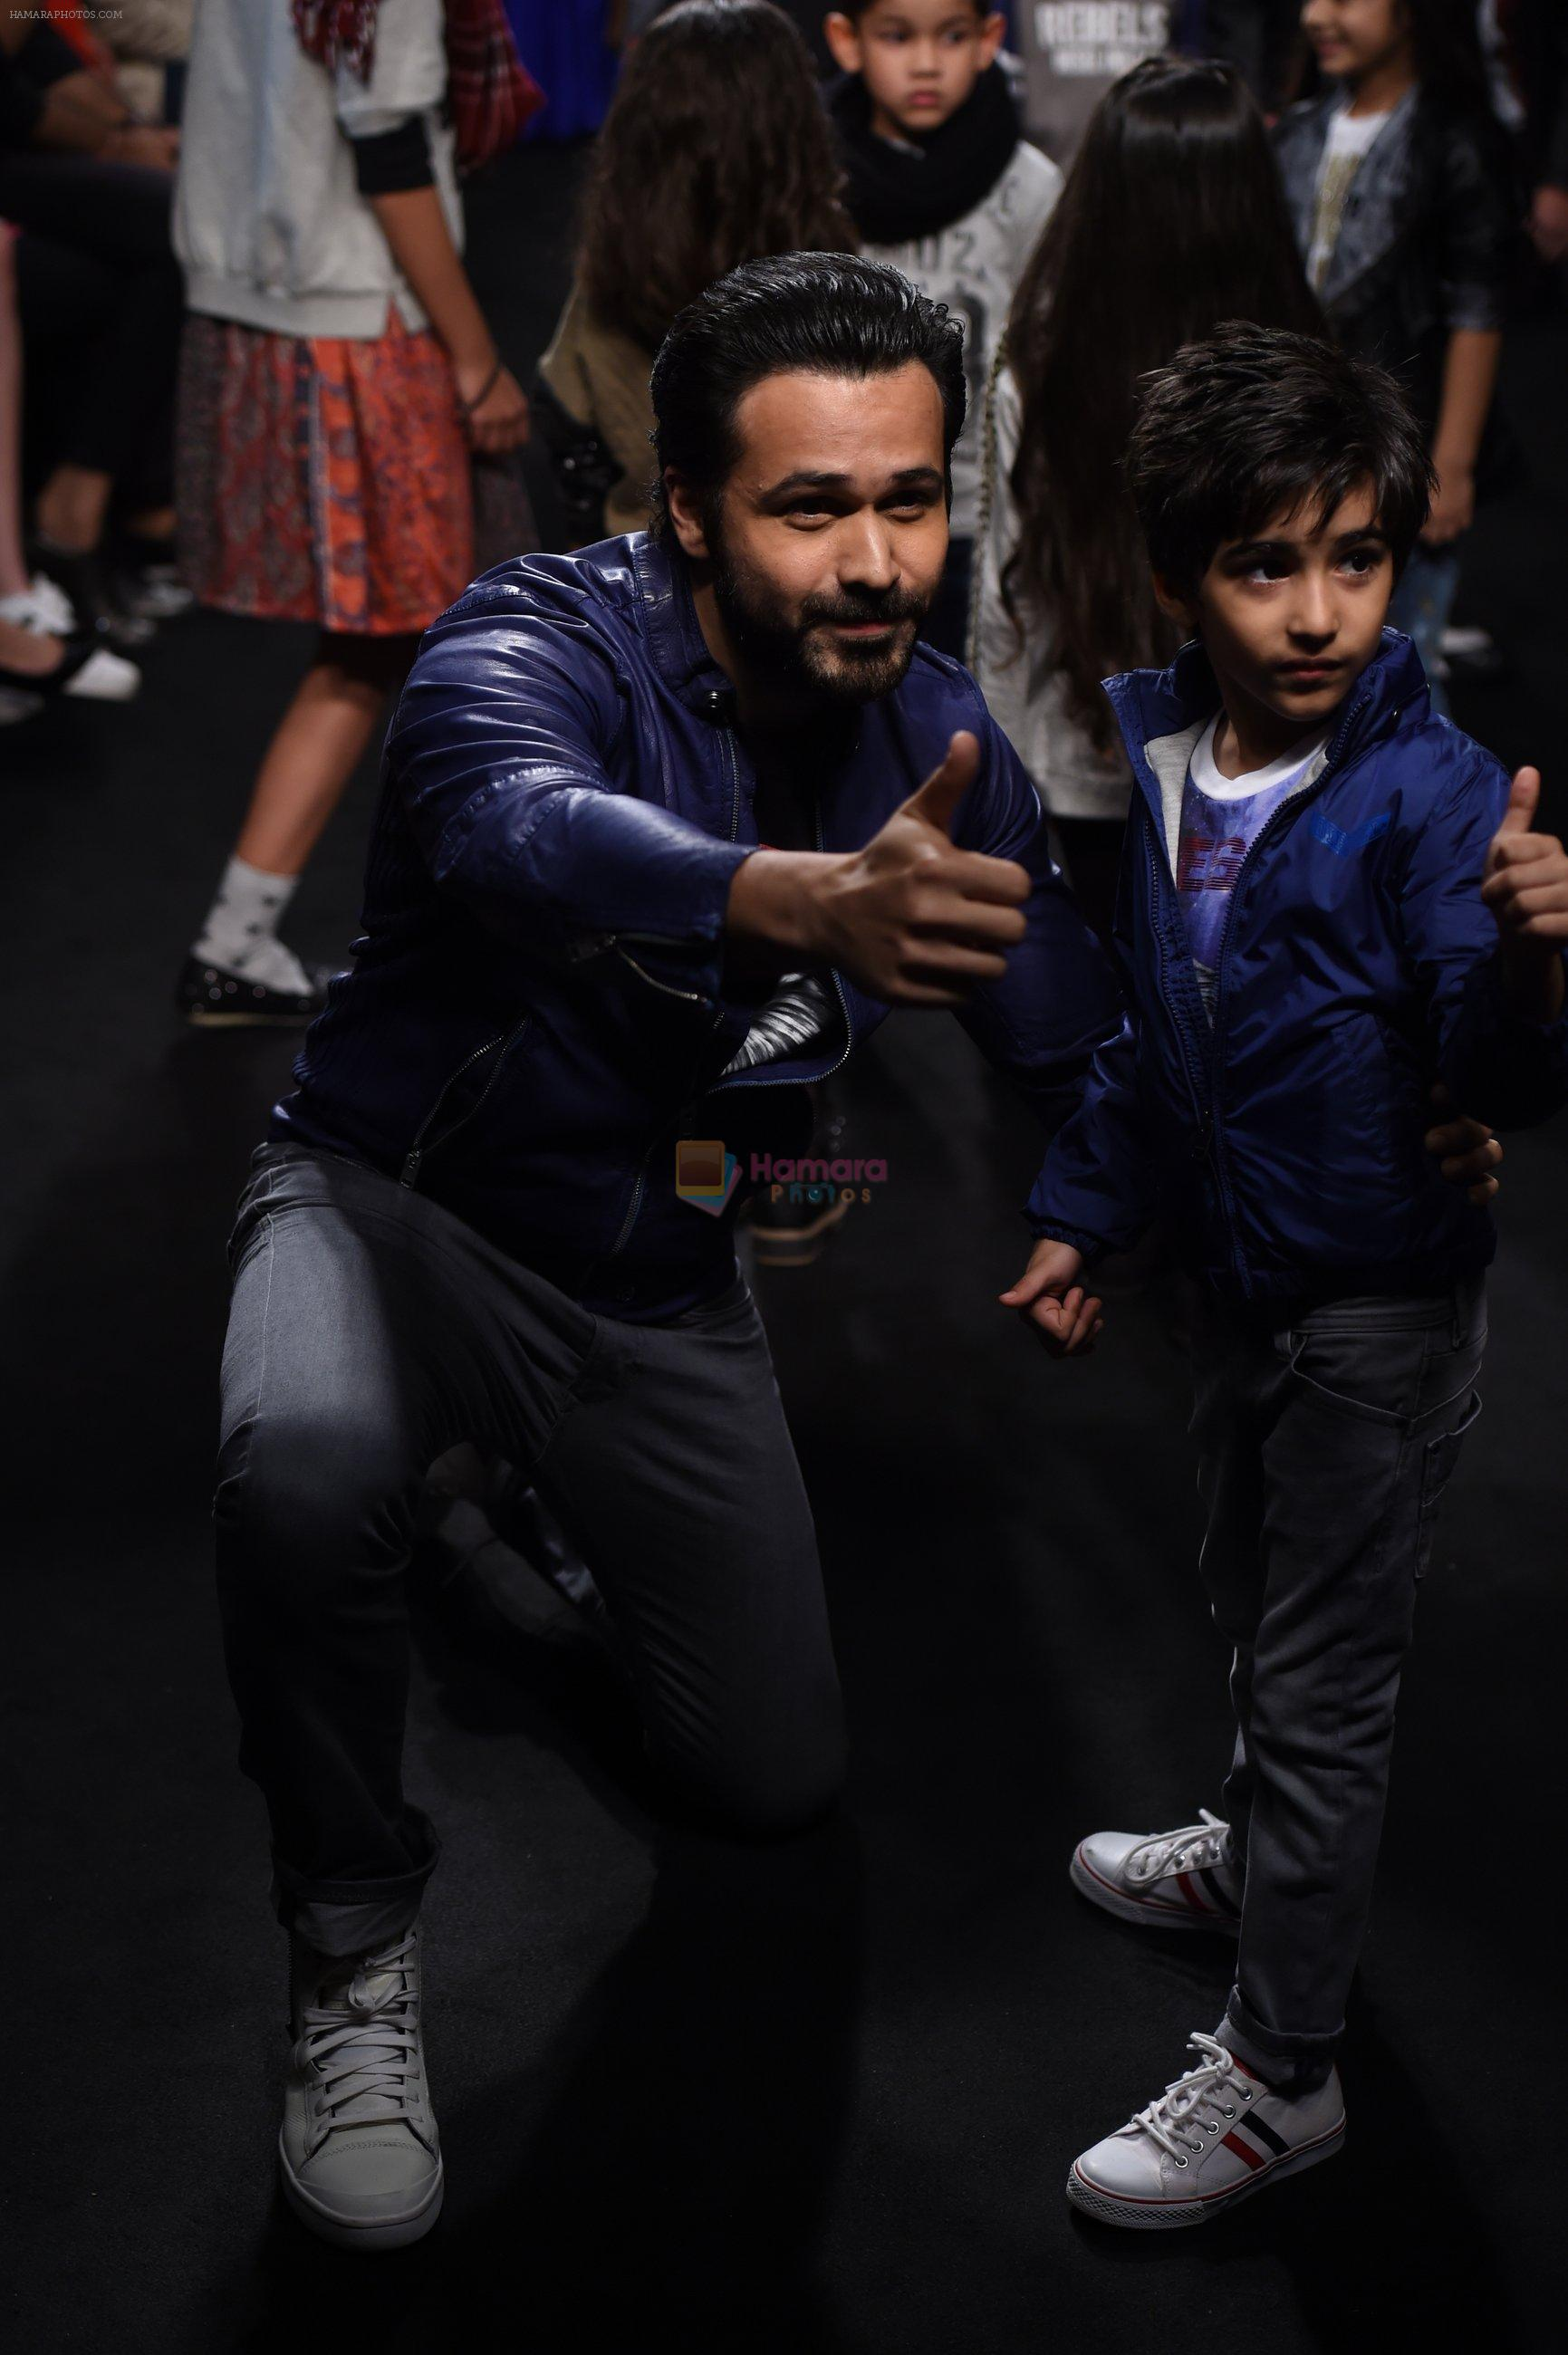 Emraan Hashmi walk the ramp for The Hamleys Show styled by Diesel Show at Lakme Fashion Week 2016 on 28th Aug 2016